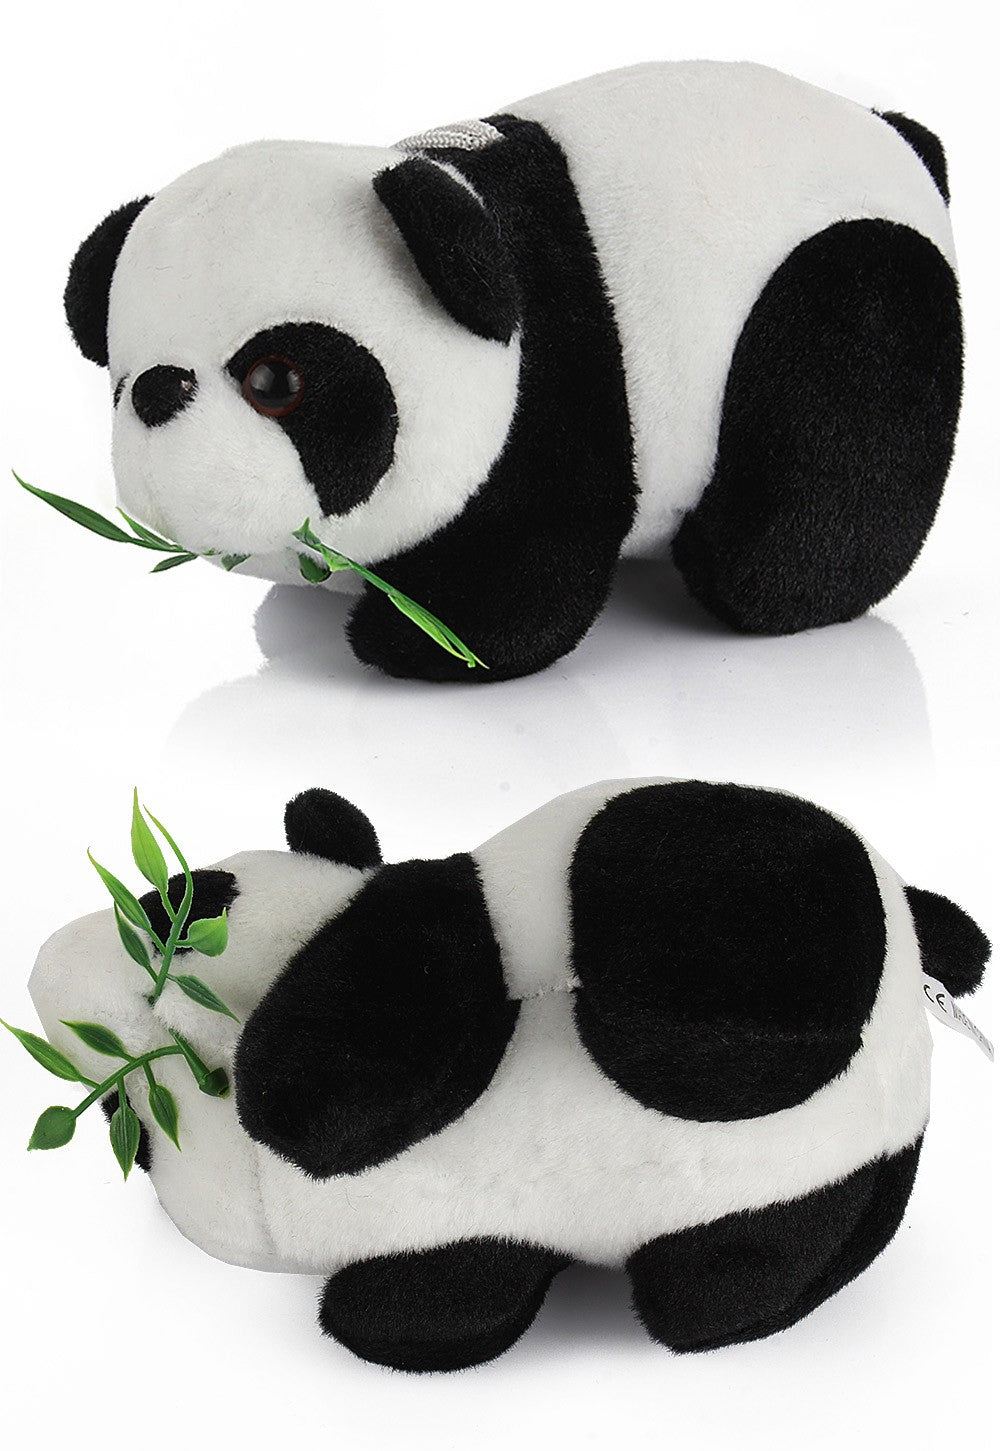 Super Cute Panda Plush Toy with Bamboo (16cm)